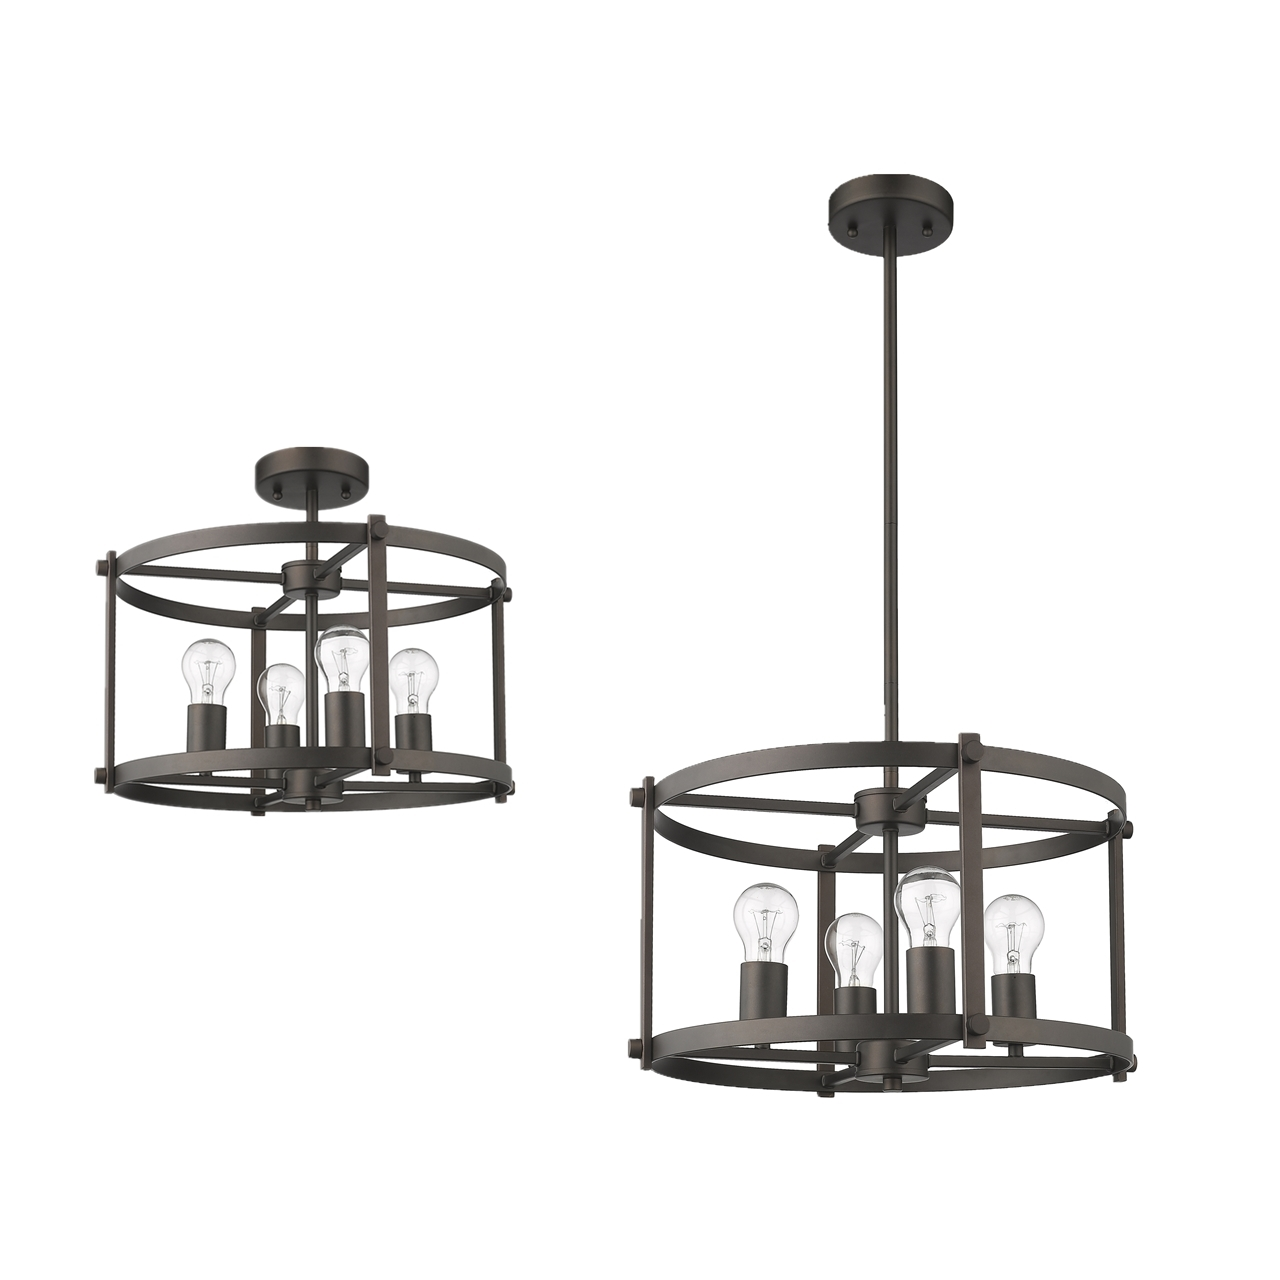 Chloe Lighting Inc Ch2h119rb18 Up4 Inverted Pendant